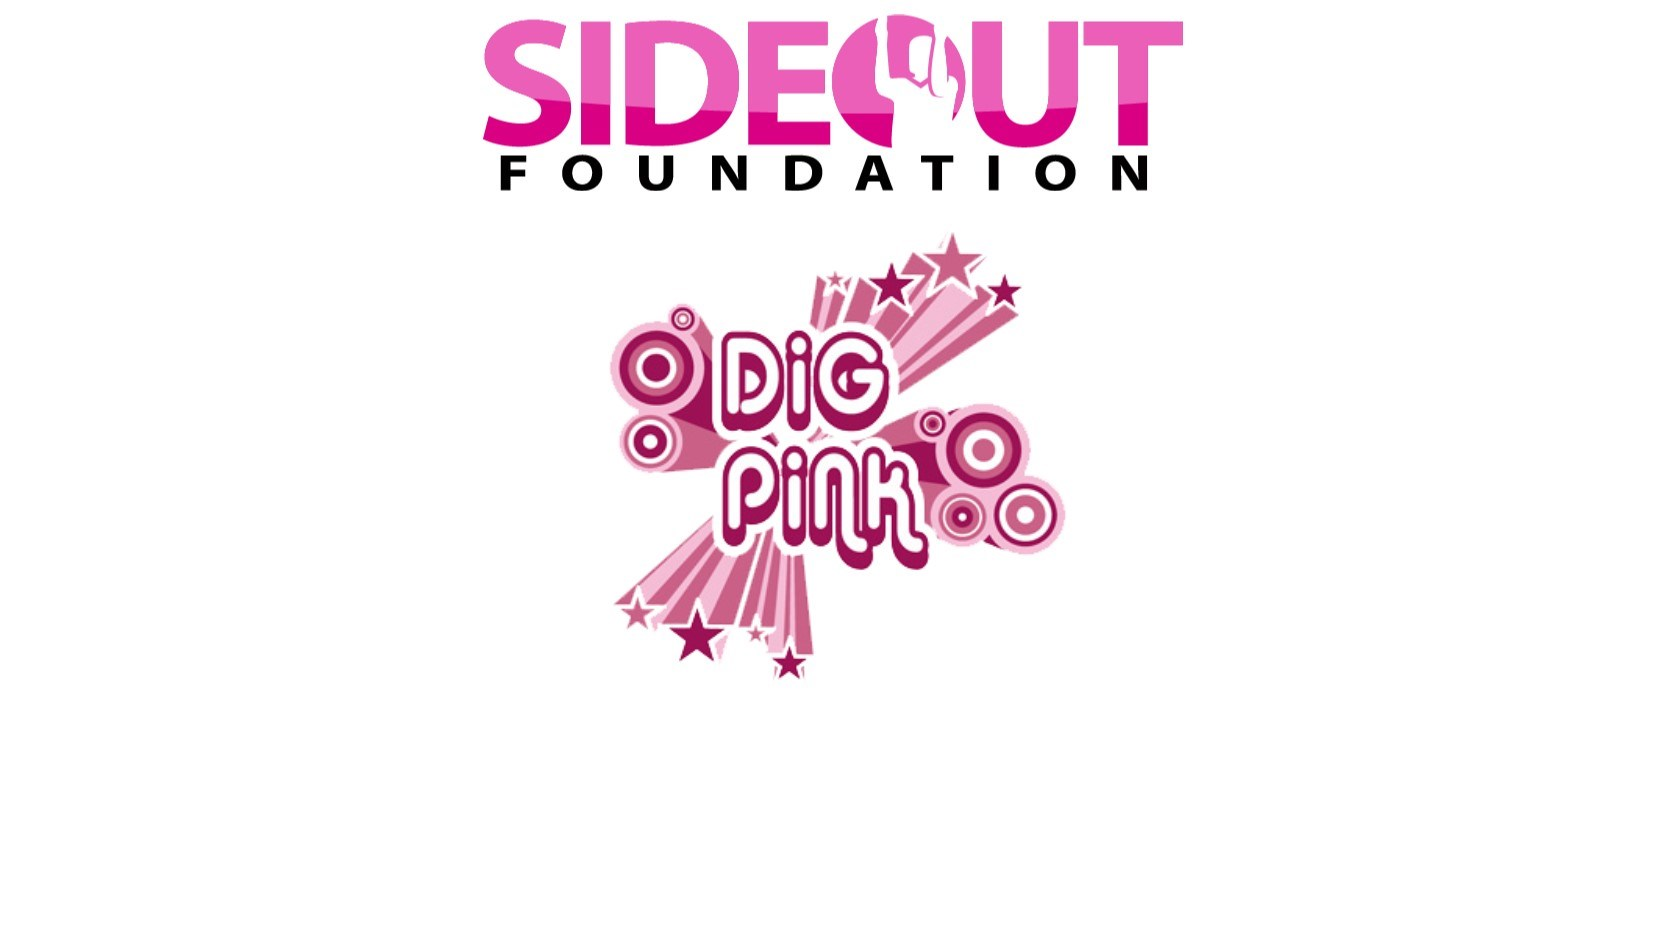 The women's volleyball team raised $1,537 as part of the Sideout Foundation's Dig Pink event.